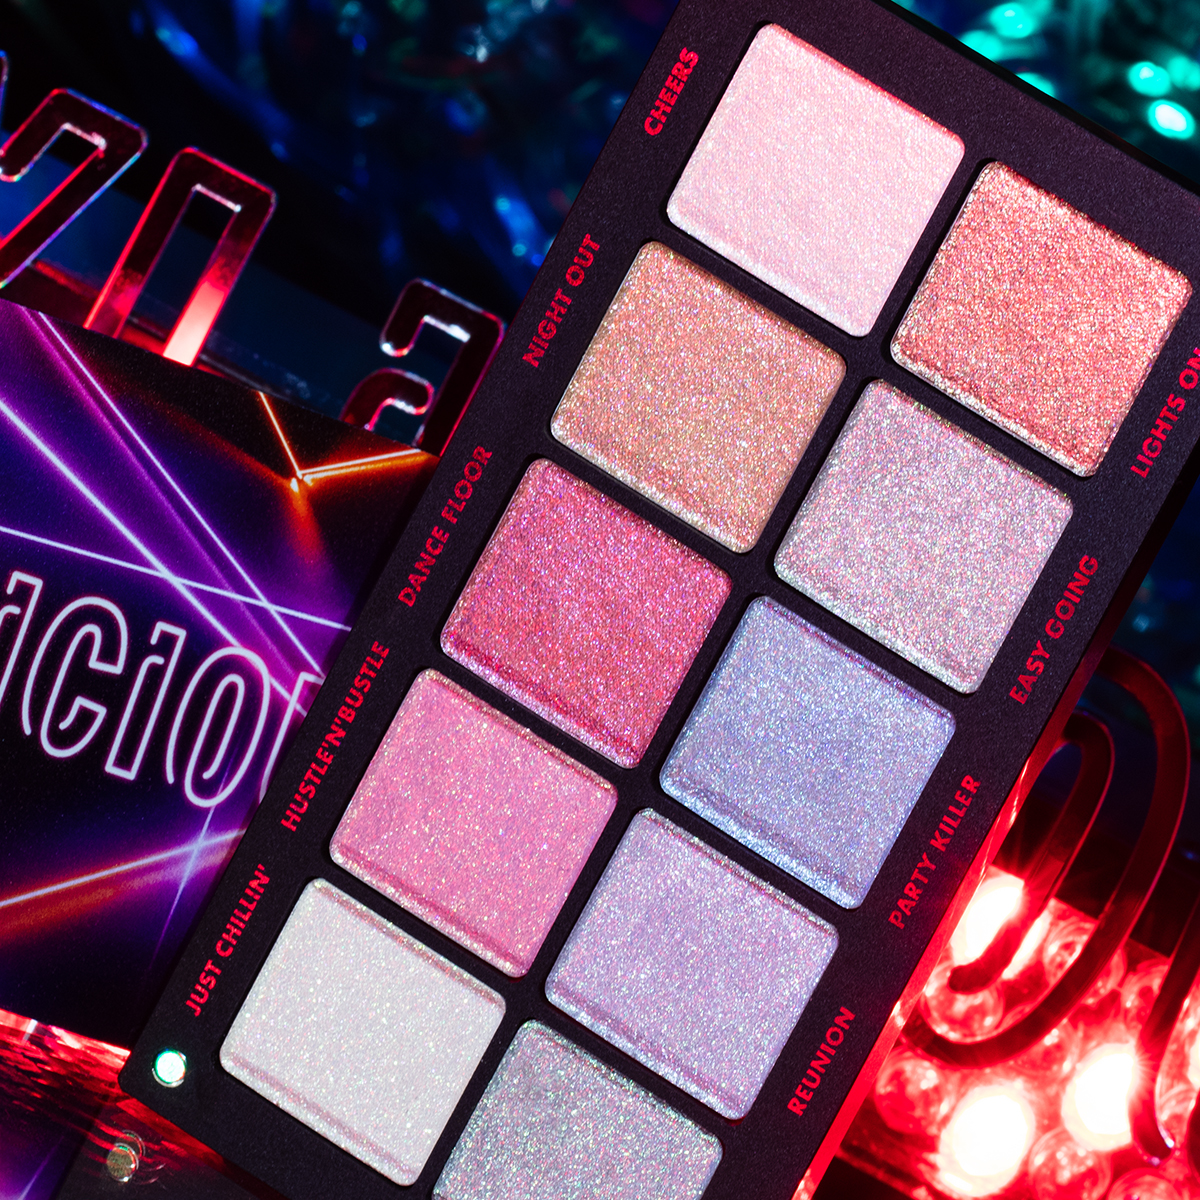 INGLOT |  - PARTYLICIOUS